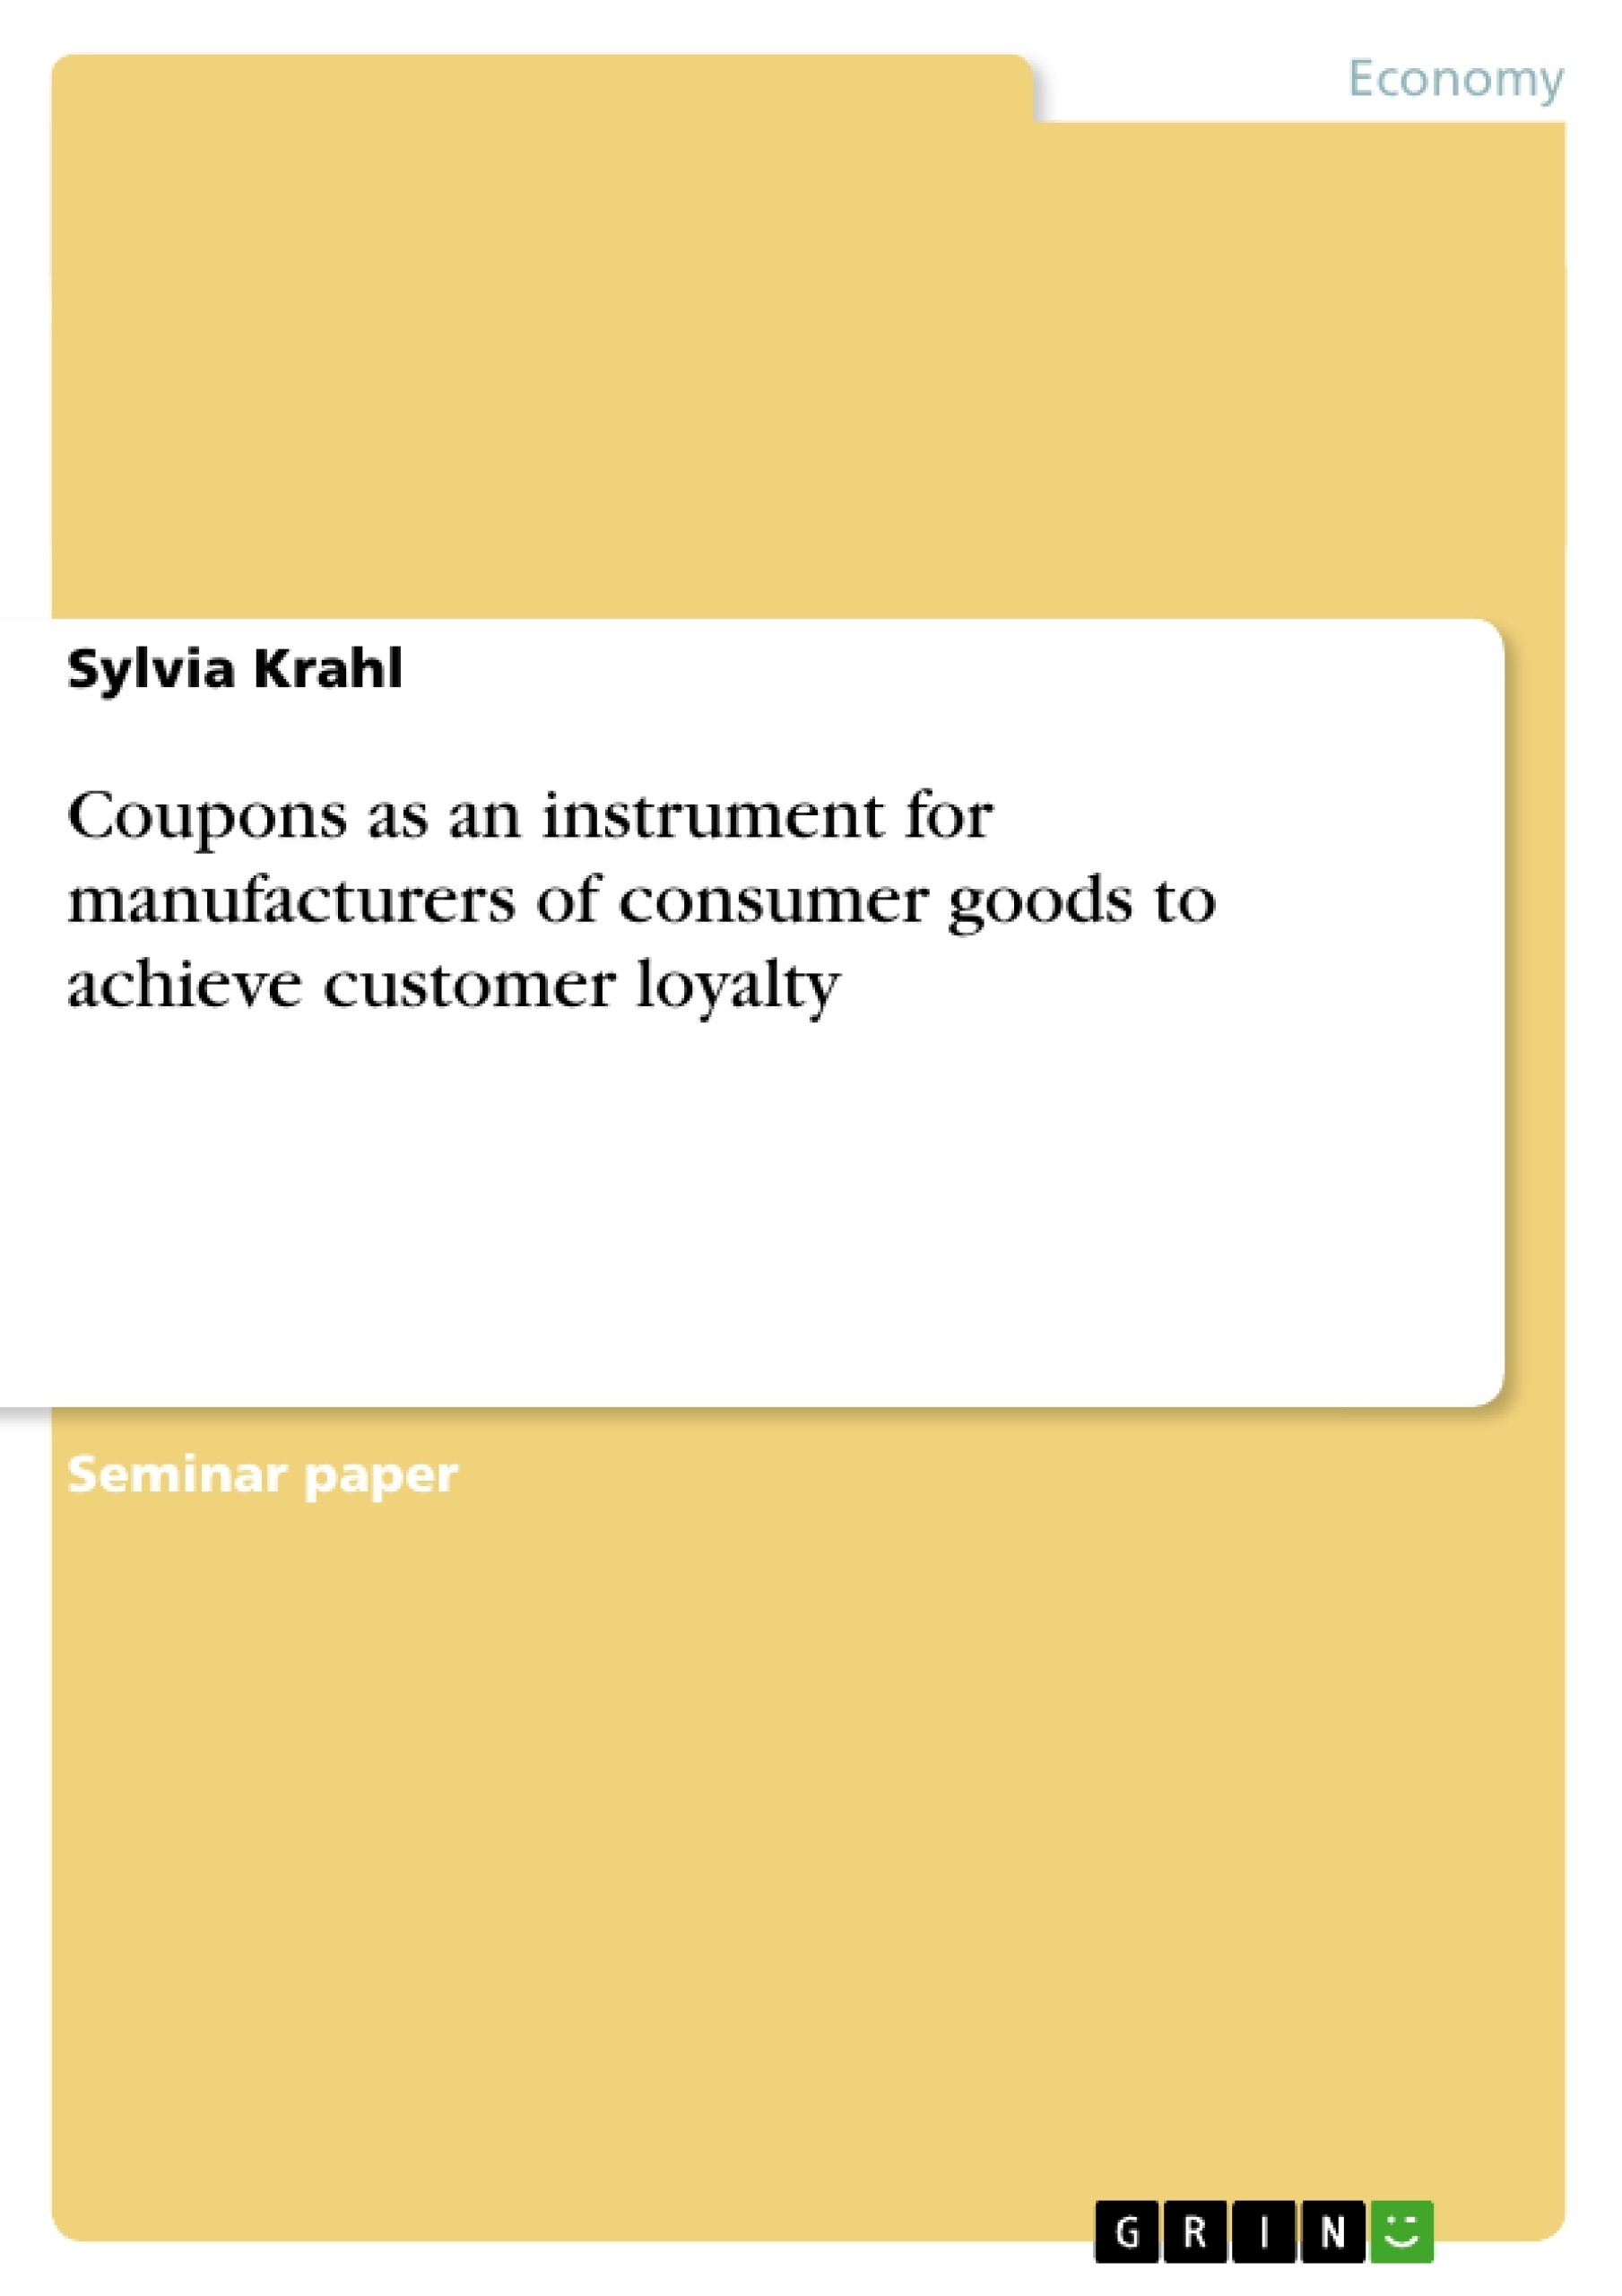 Title: Coupons as an instrument for manufacturers of consumer goods to achieve customer loyalty